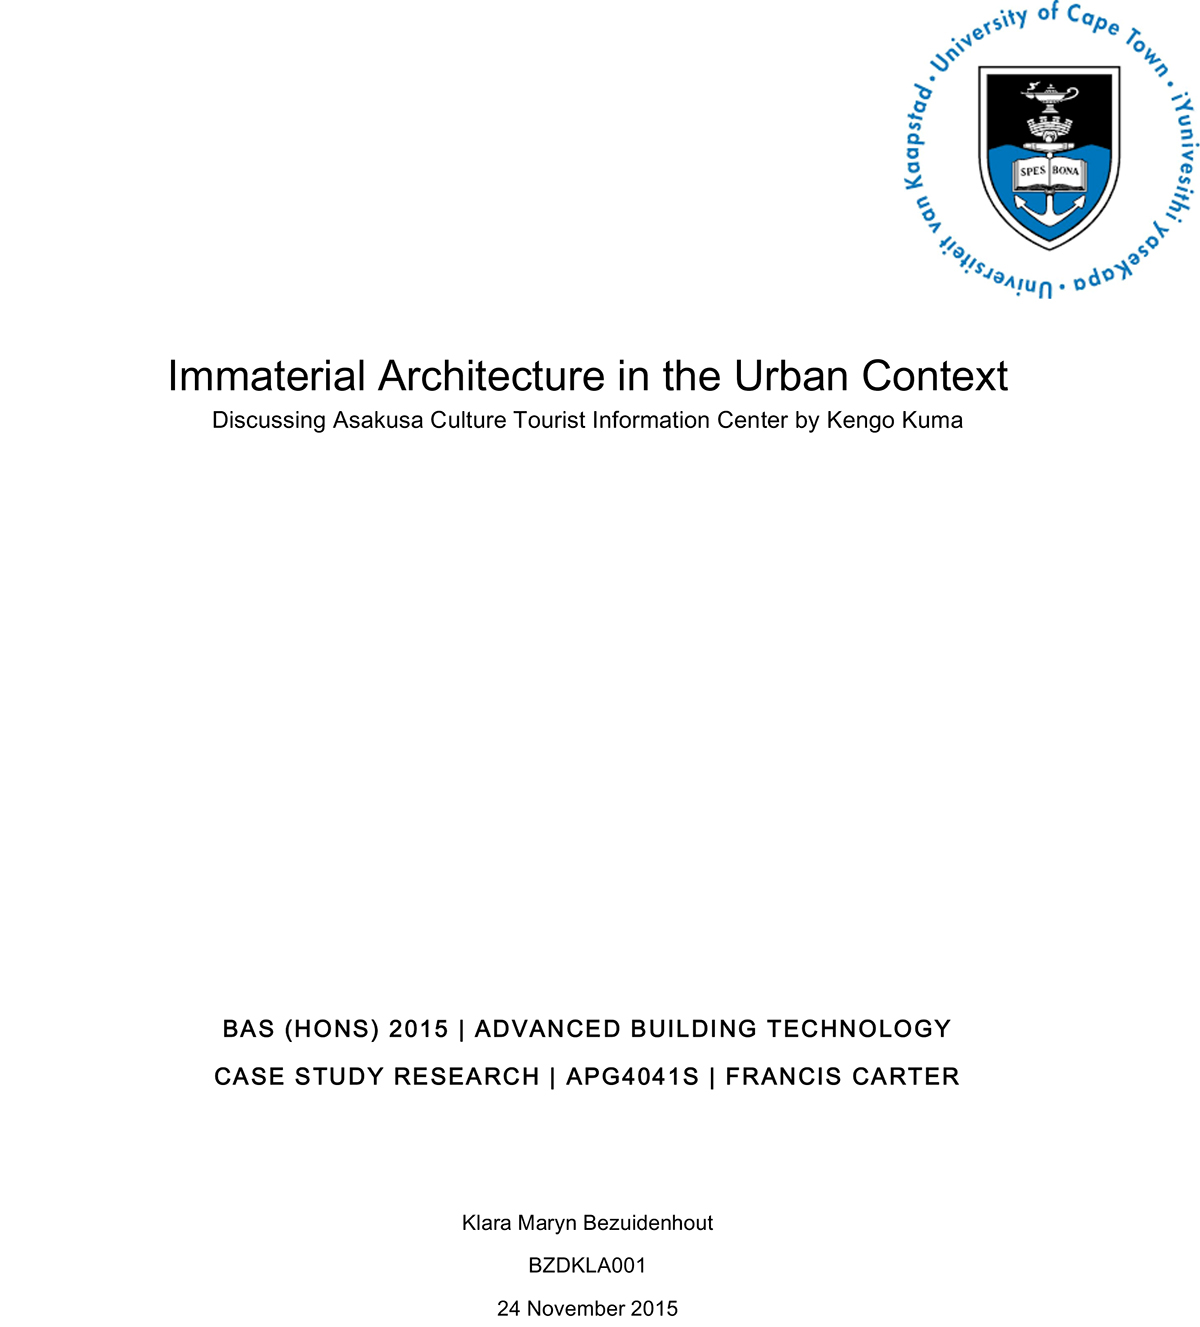 essay immaterial architecture in the urban context on behance